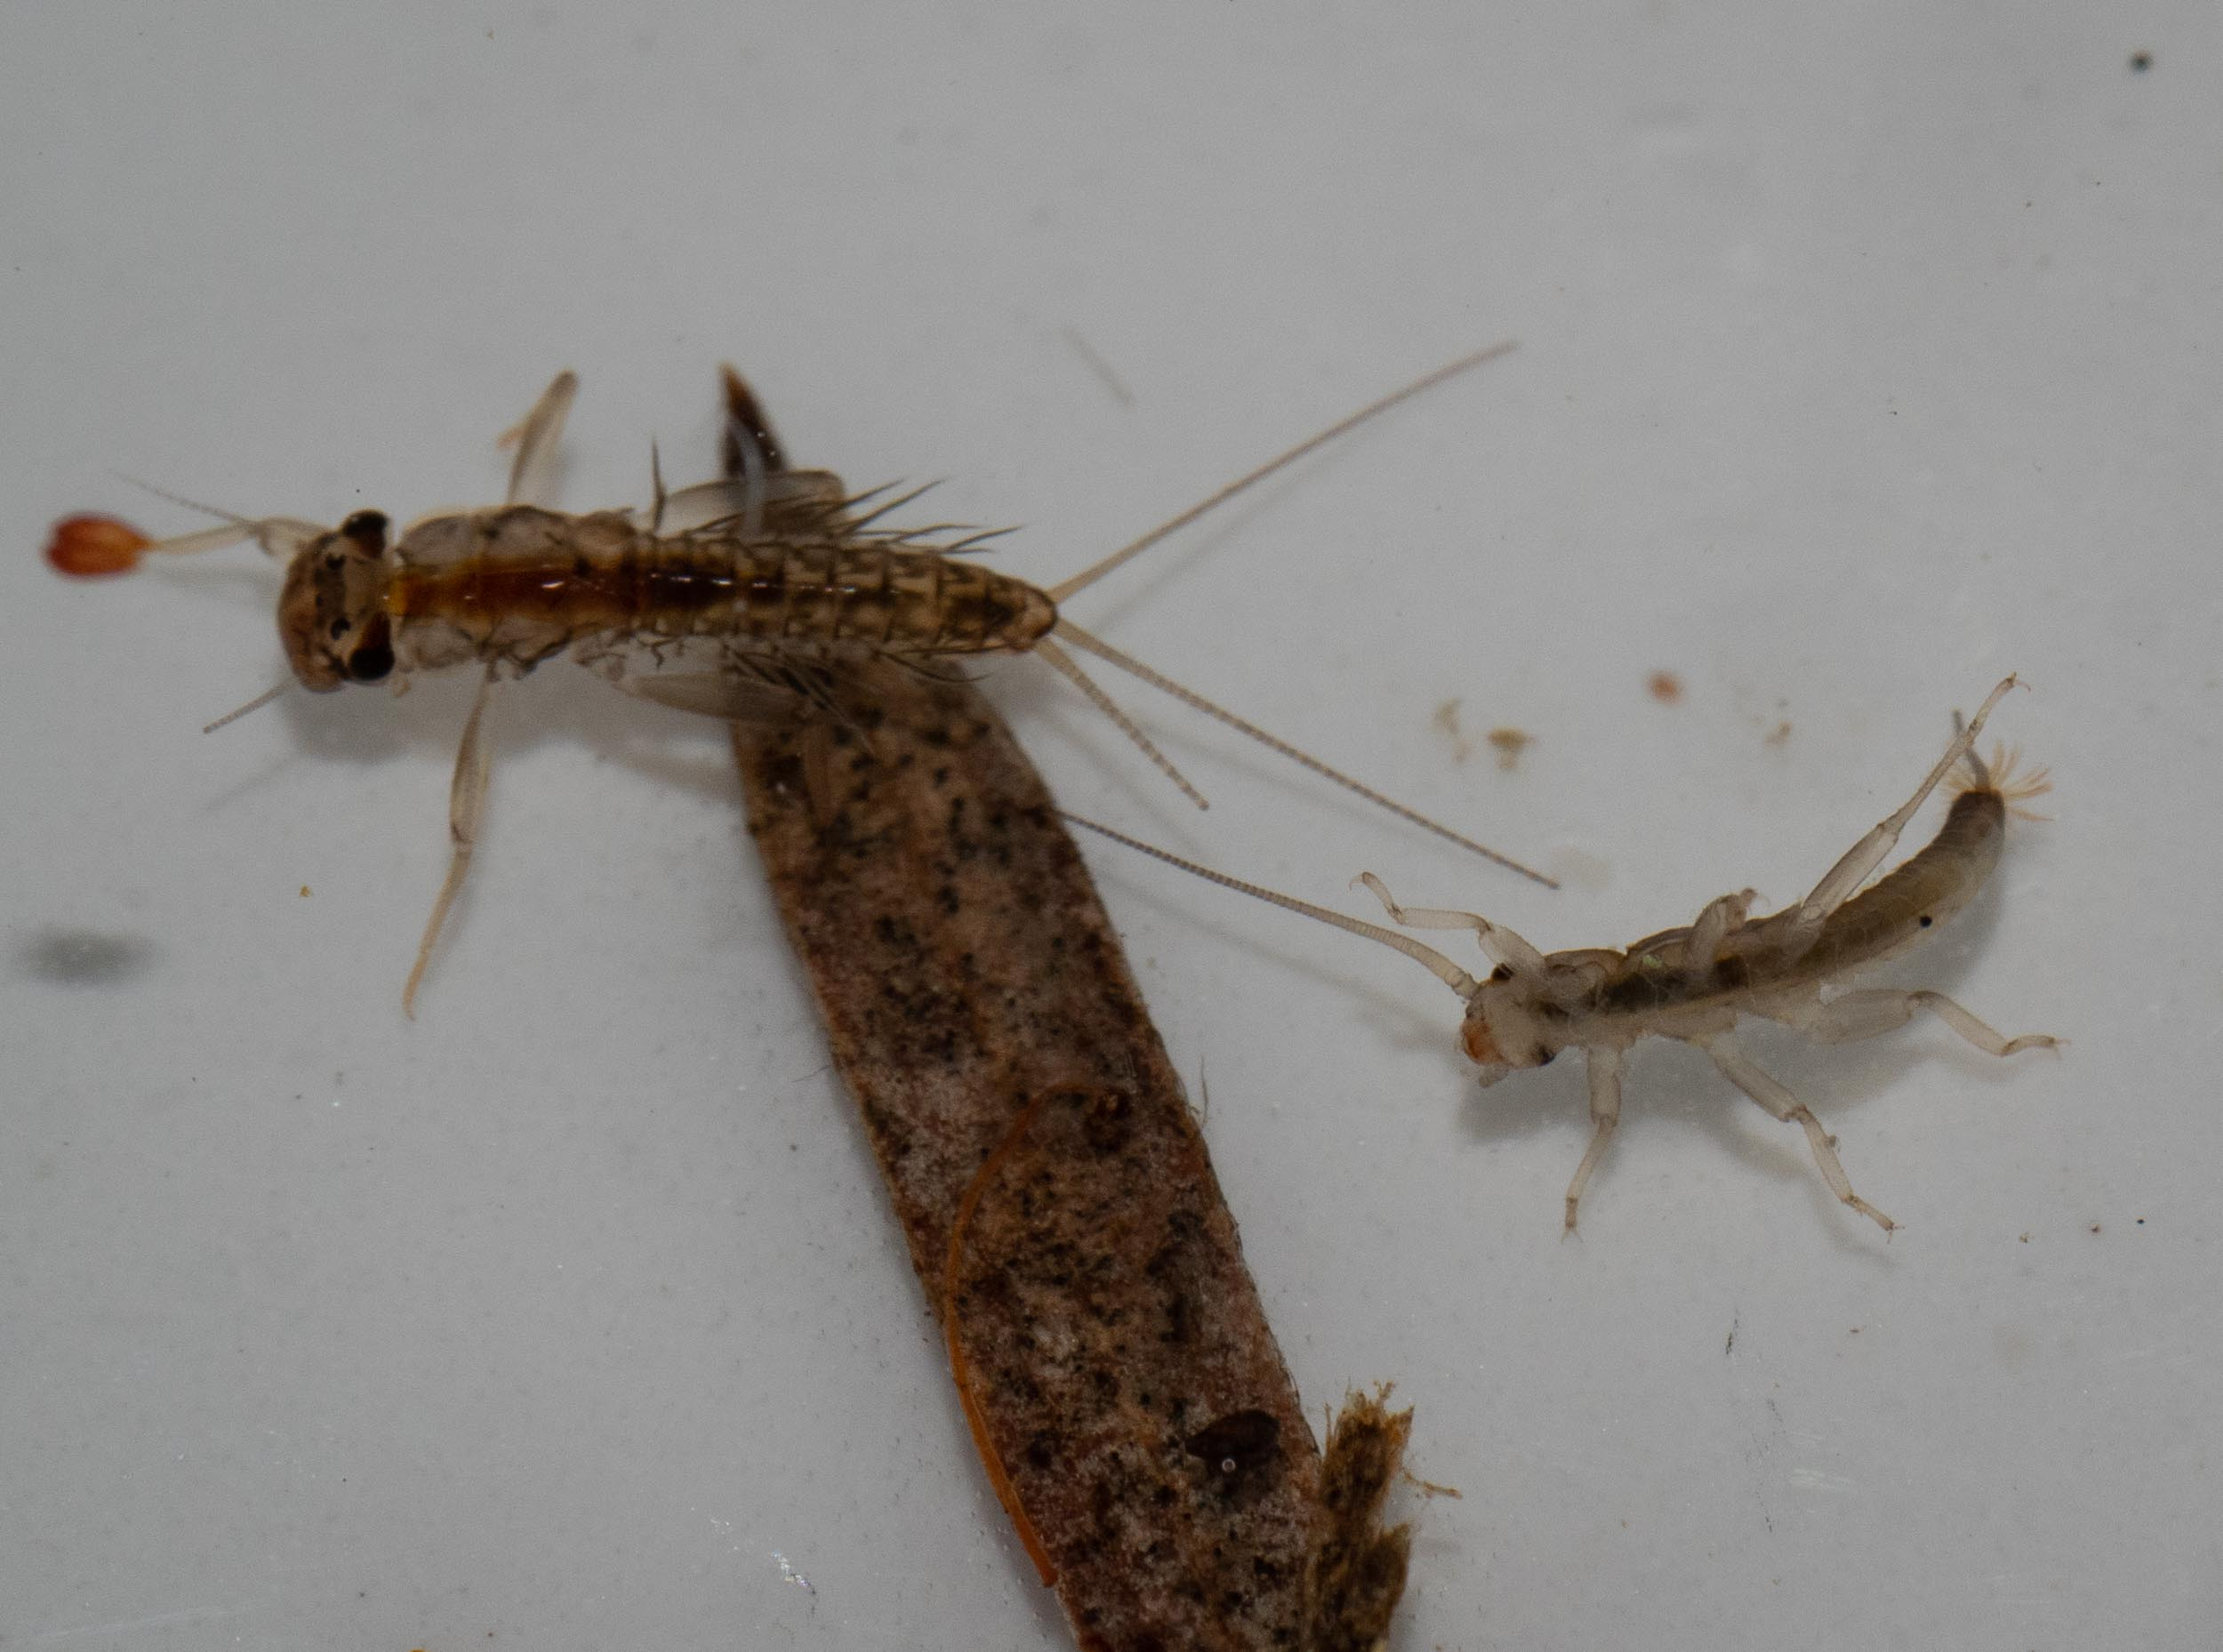 mayfly and stonefly larvae